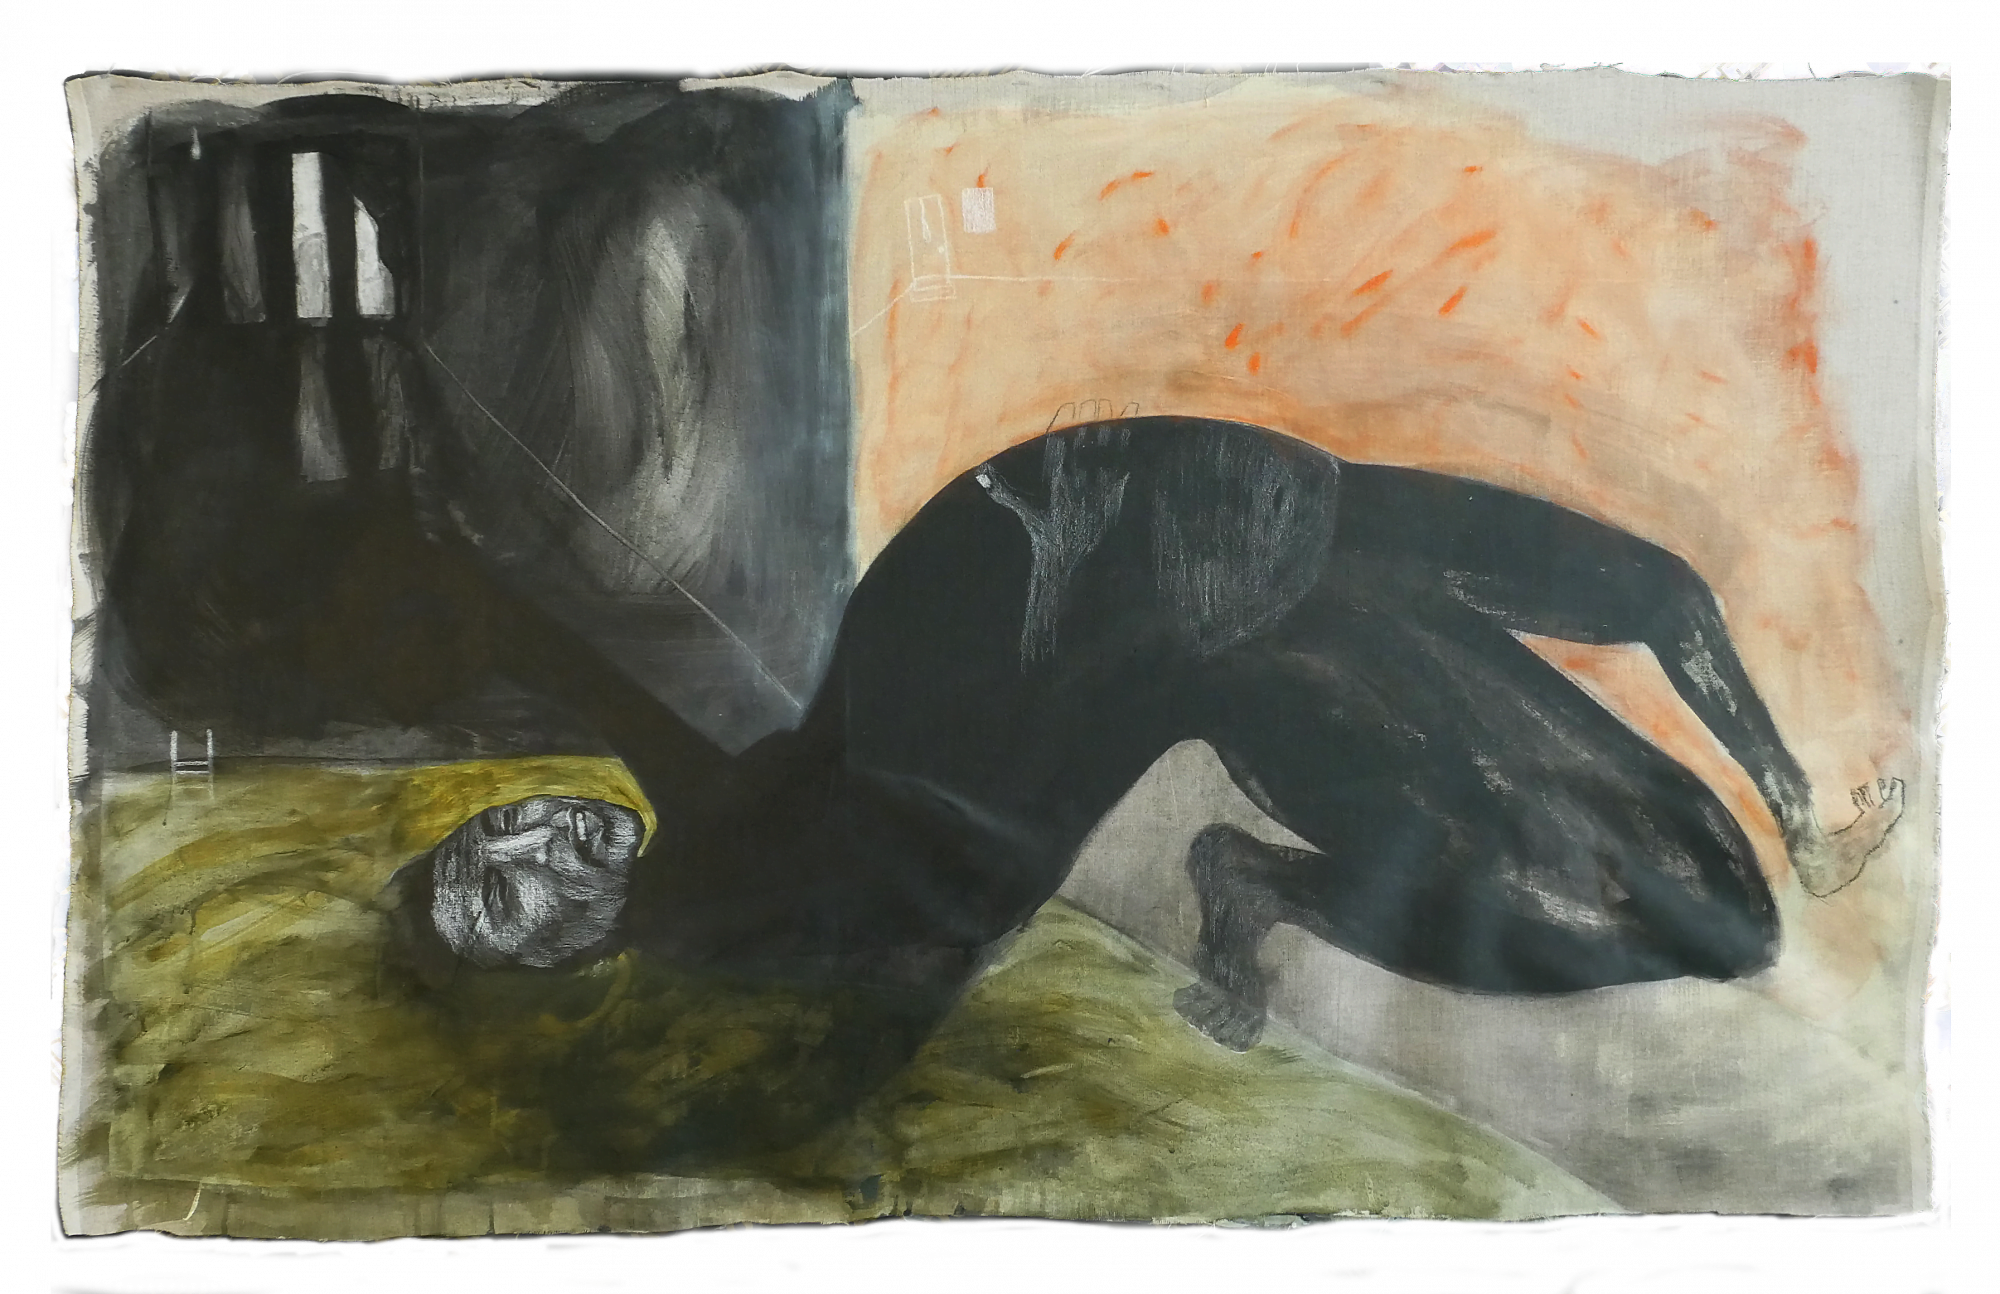 A landscape painting with a large figure bending over backwards touching the floor with their foot and head. The painting is dark in colour with large watery brush strokes.